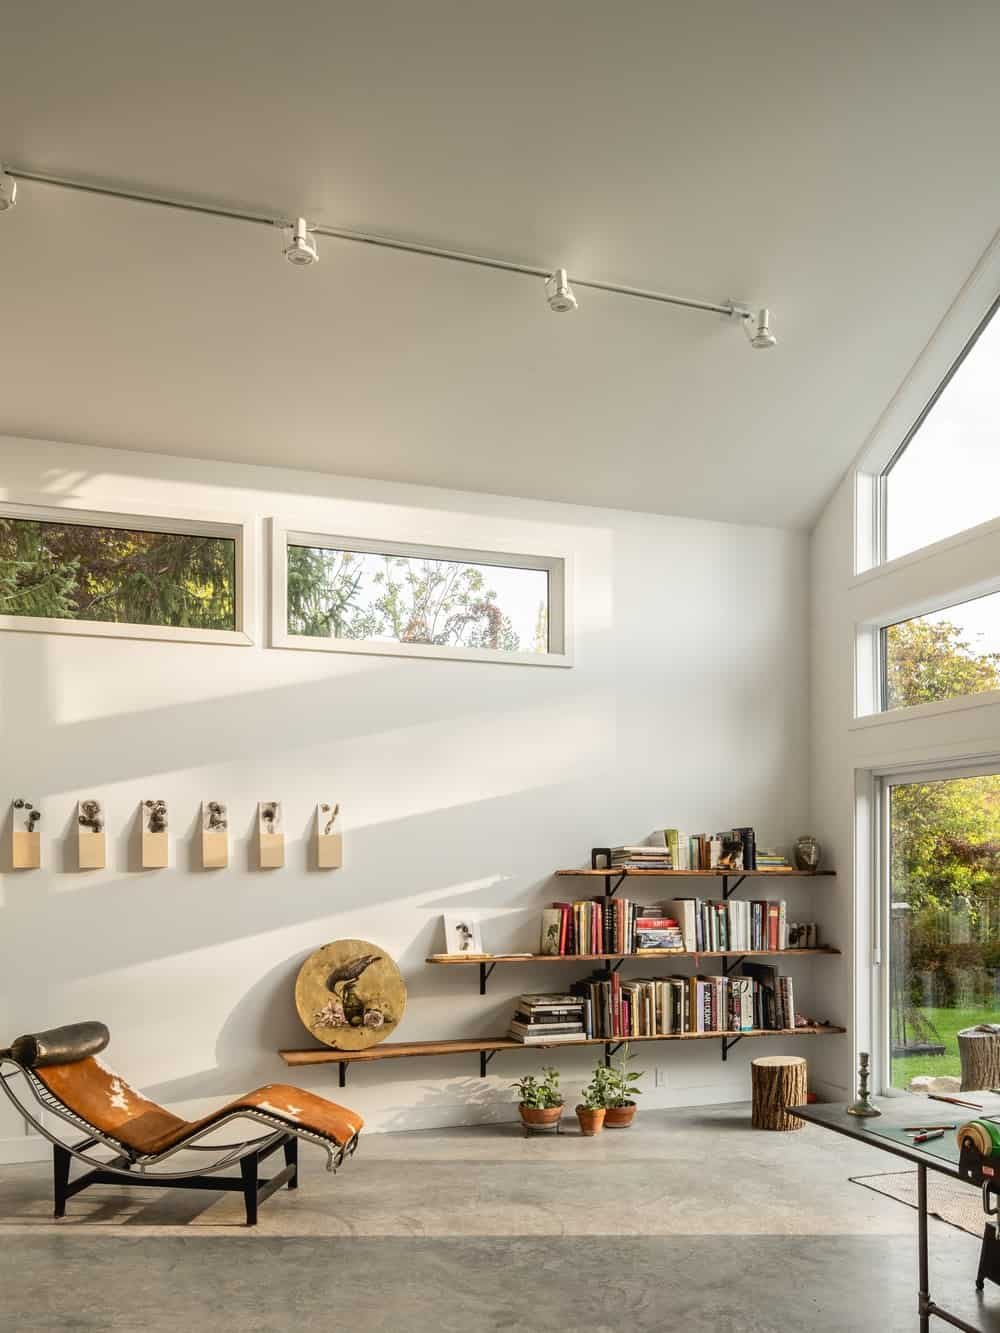 At the back of the extension is a large door that leads to the backyard by the large glass wall that illuminates the wall of shelves on the side with a lounge chair.